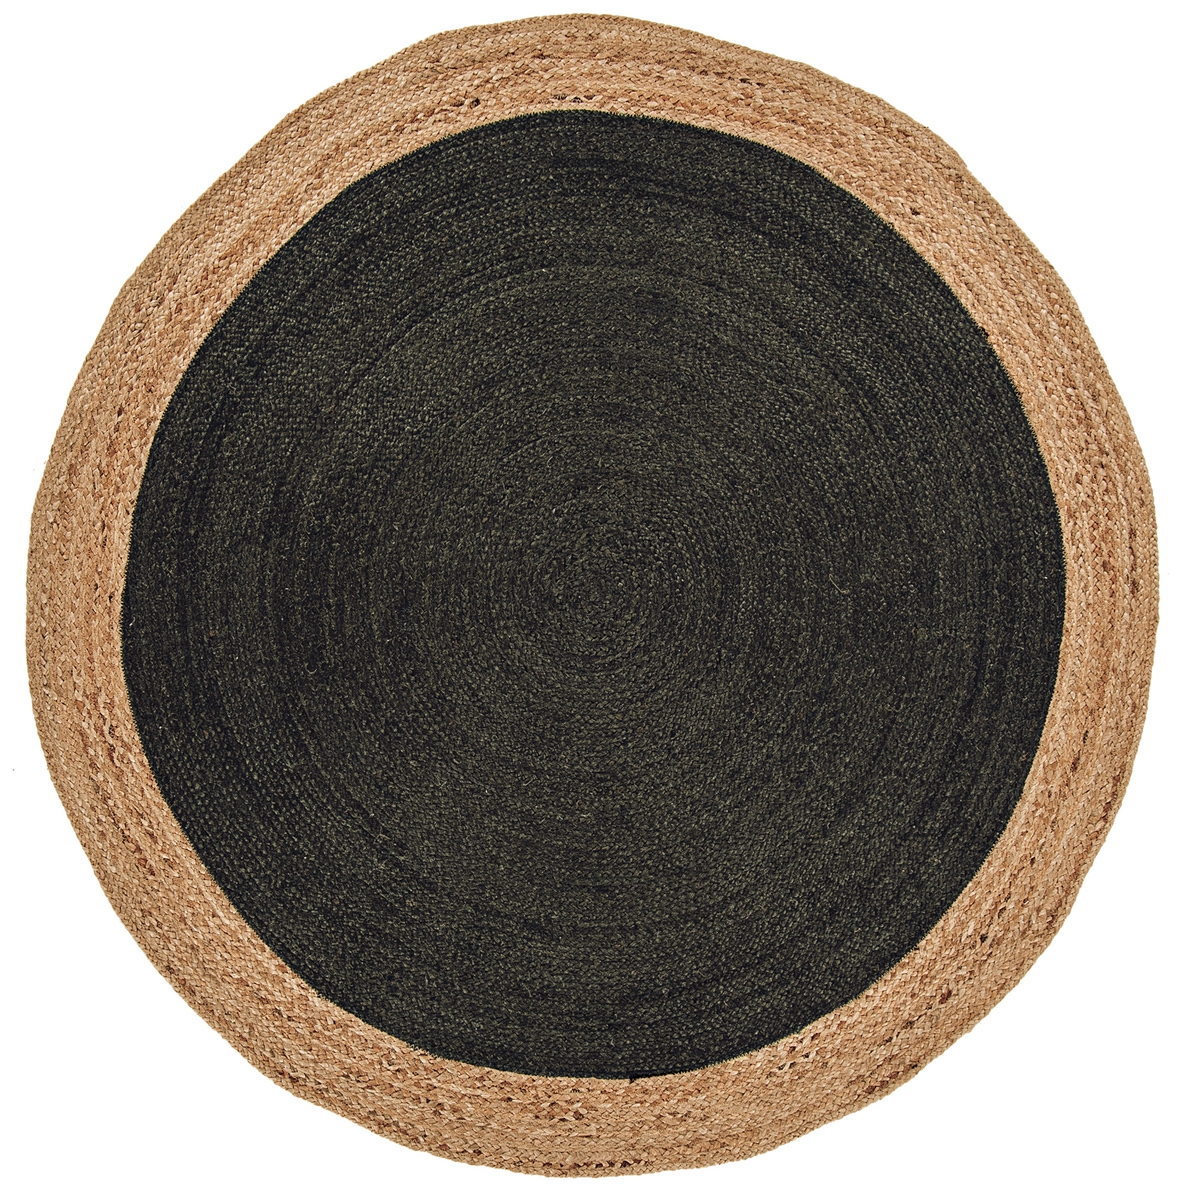 tapis rond 300 cm id es de d coration int rieure french decor. Black Bedroom Furniture Sets. Home Design Ideas